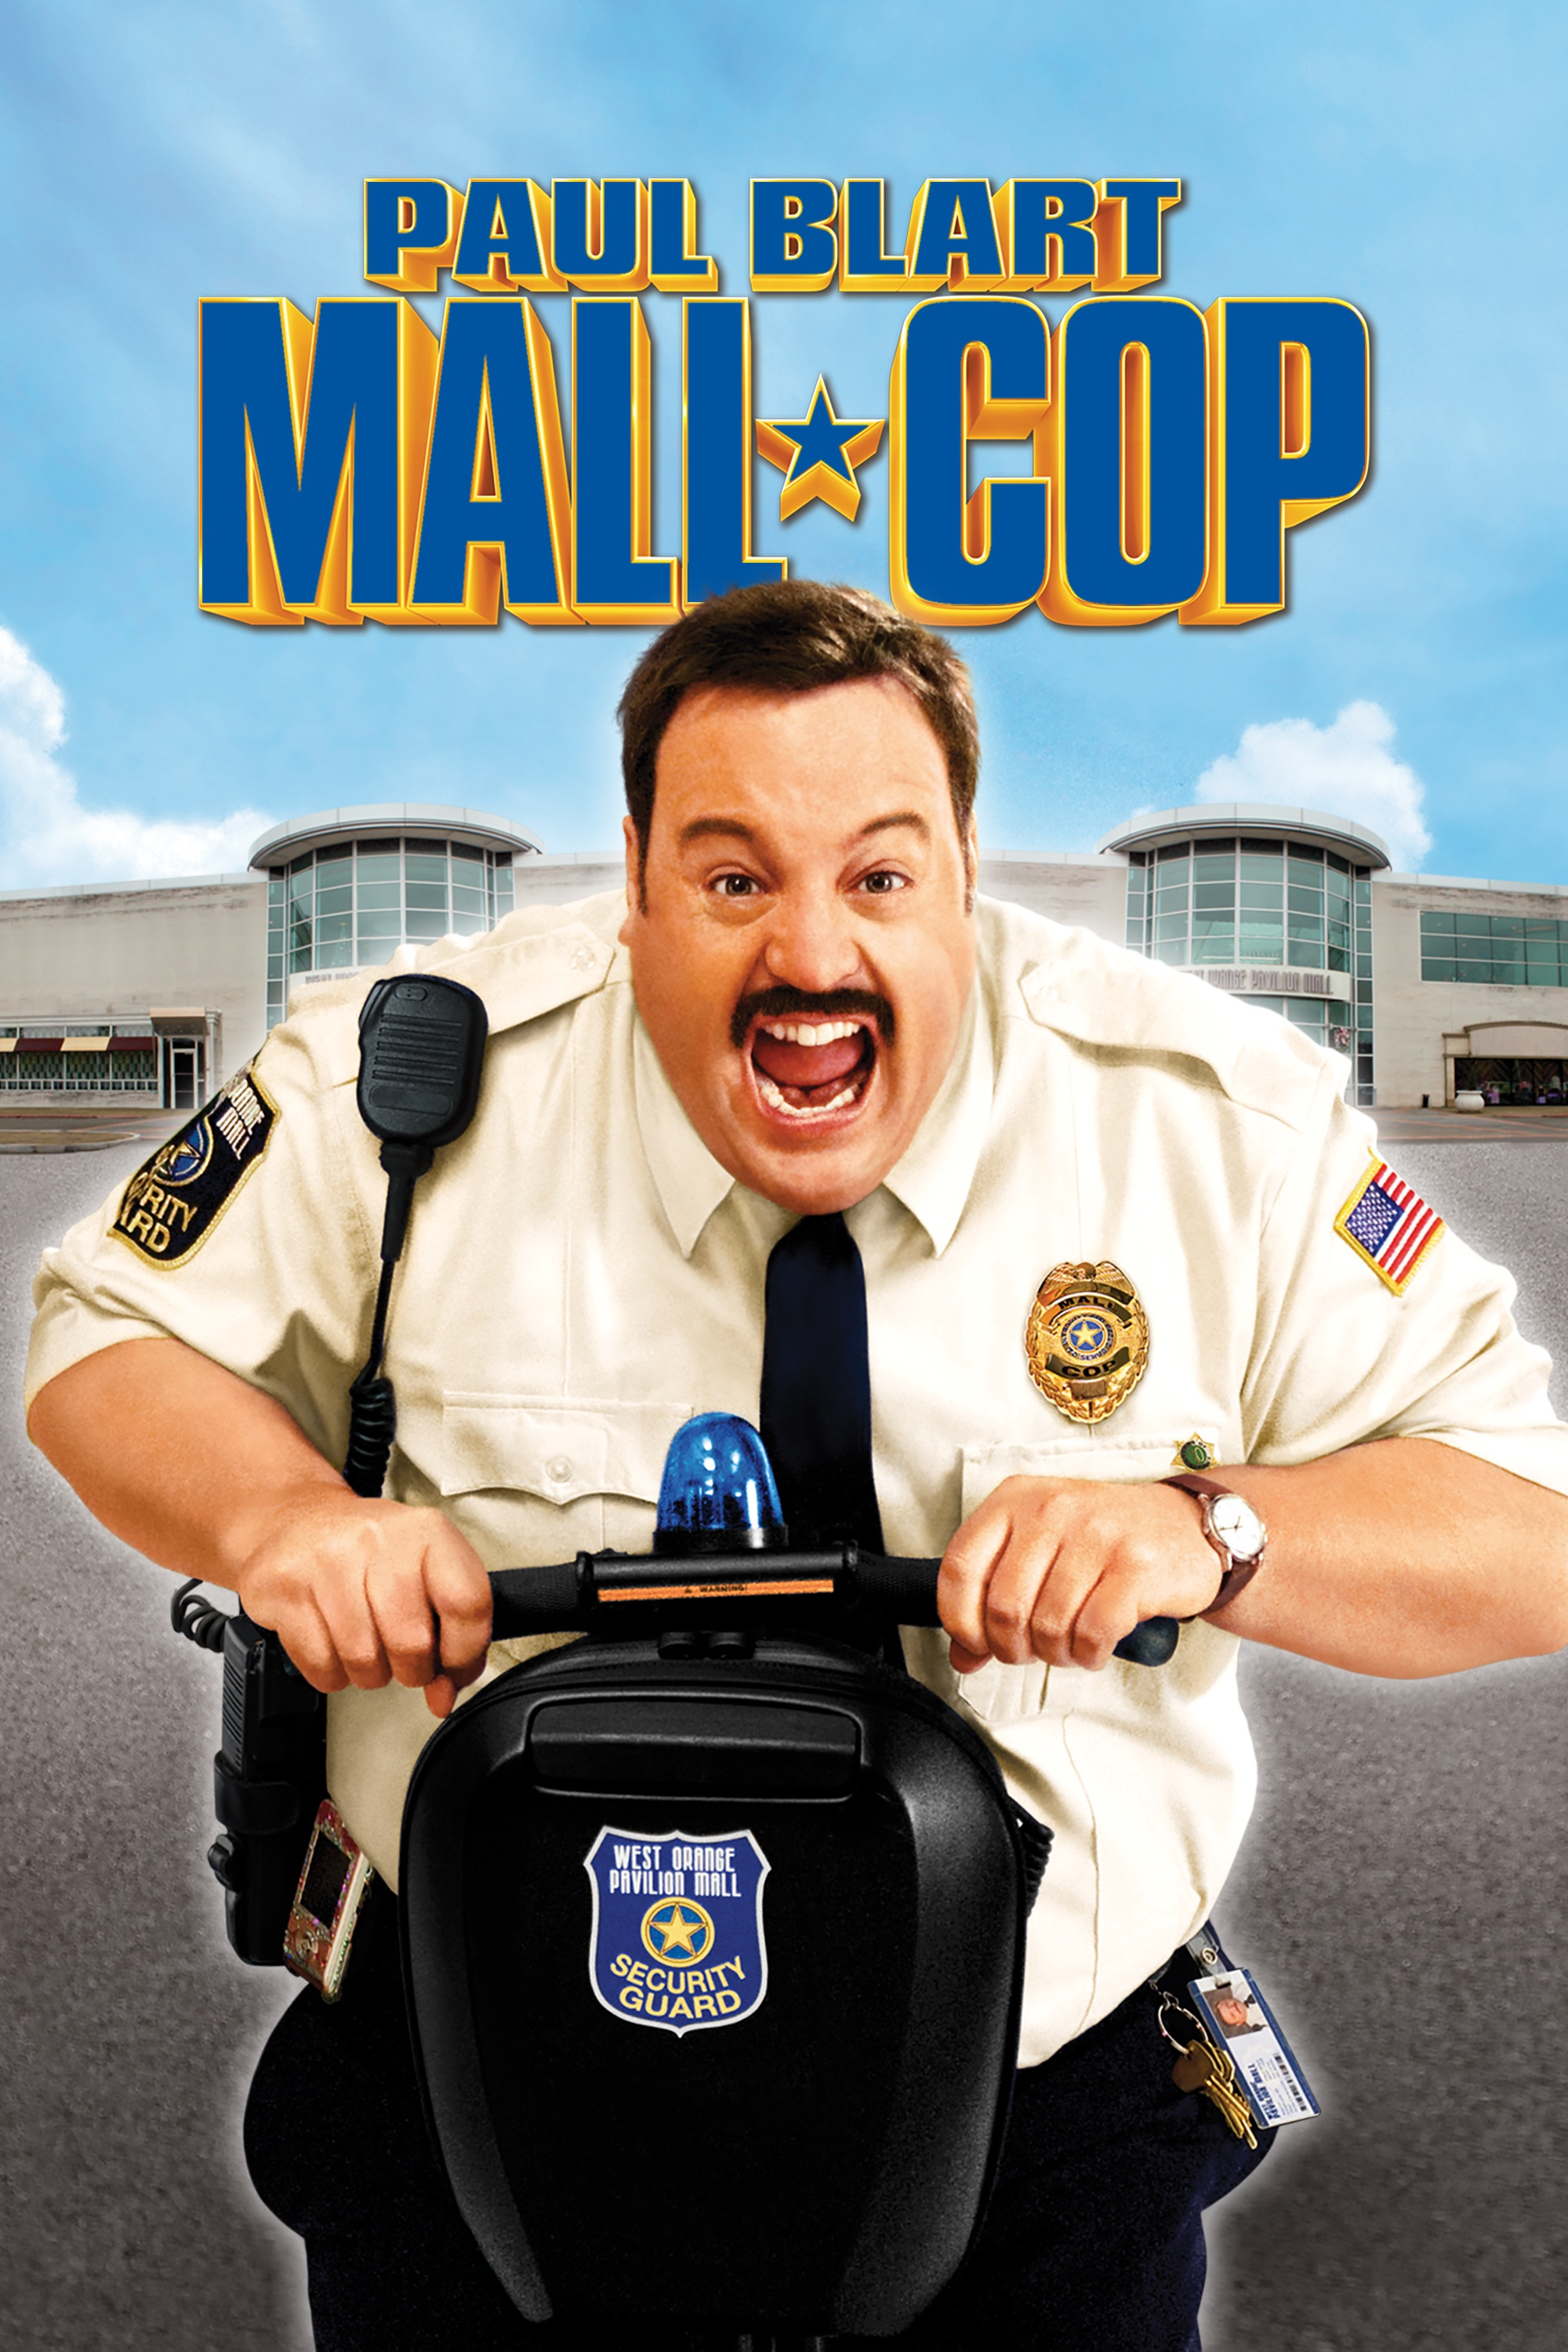 Paul Blart Mall Cop on iTunes